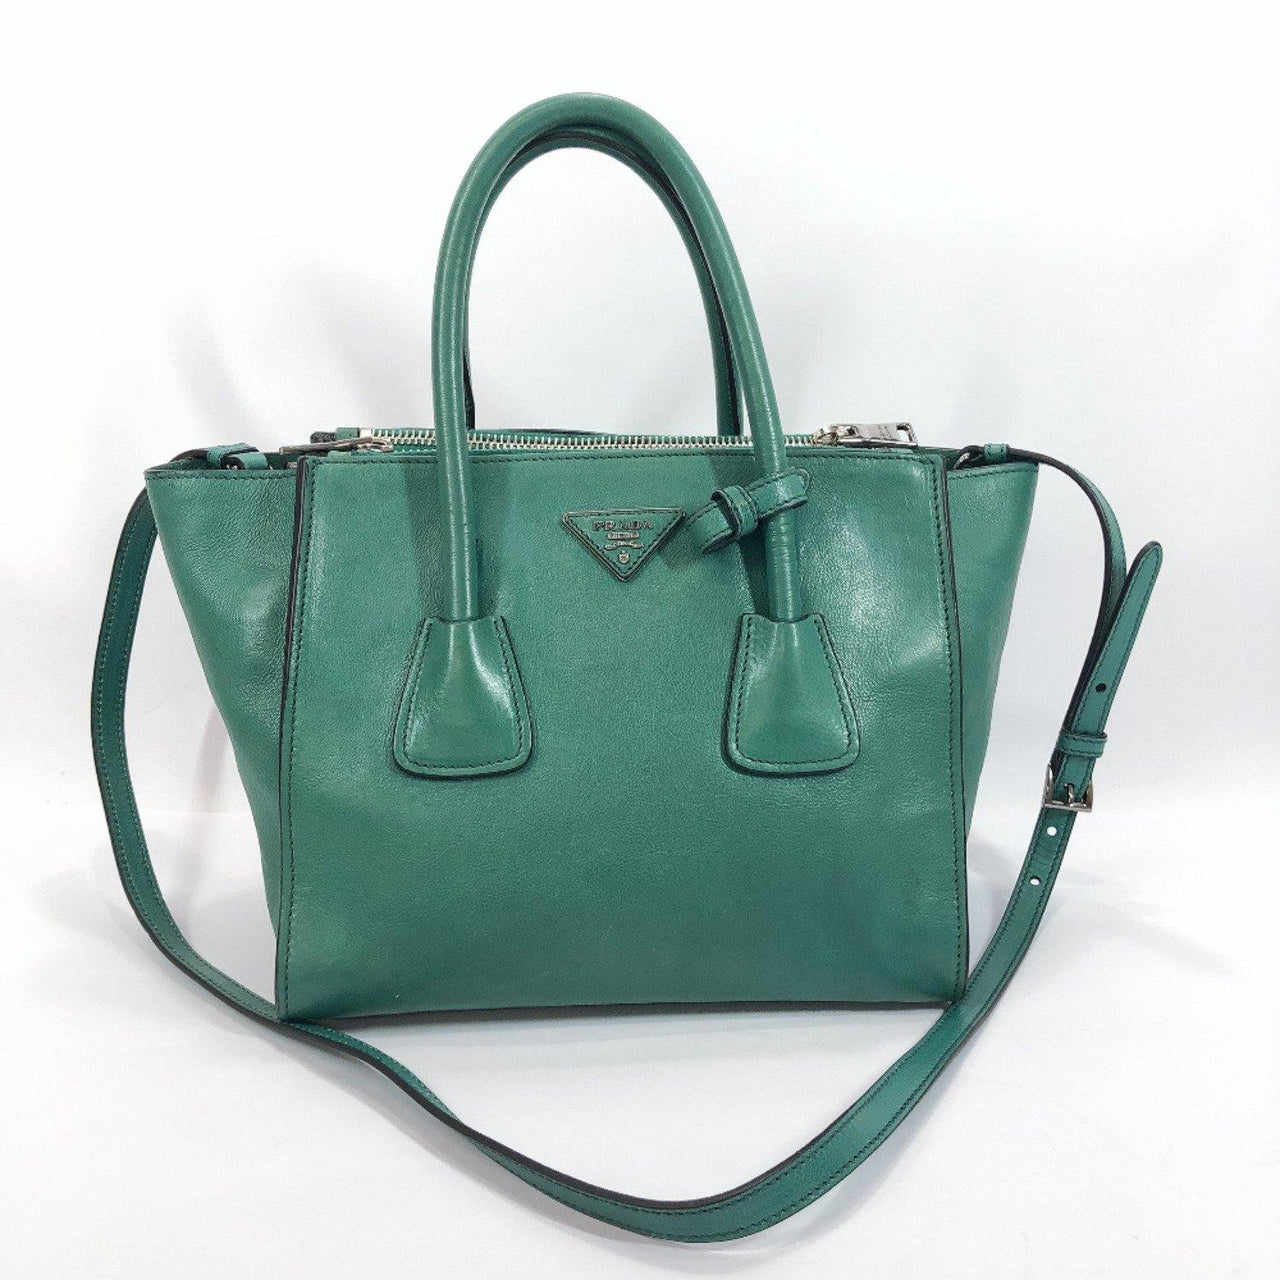 PRADA Handbag leather green Women Used